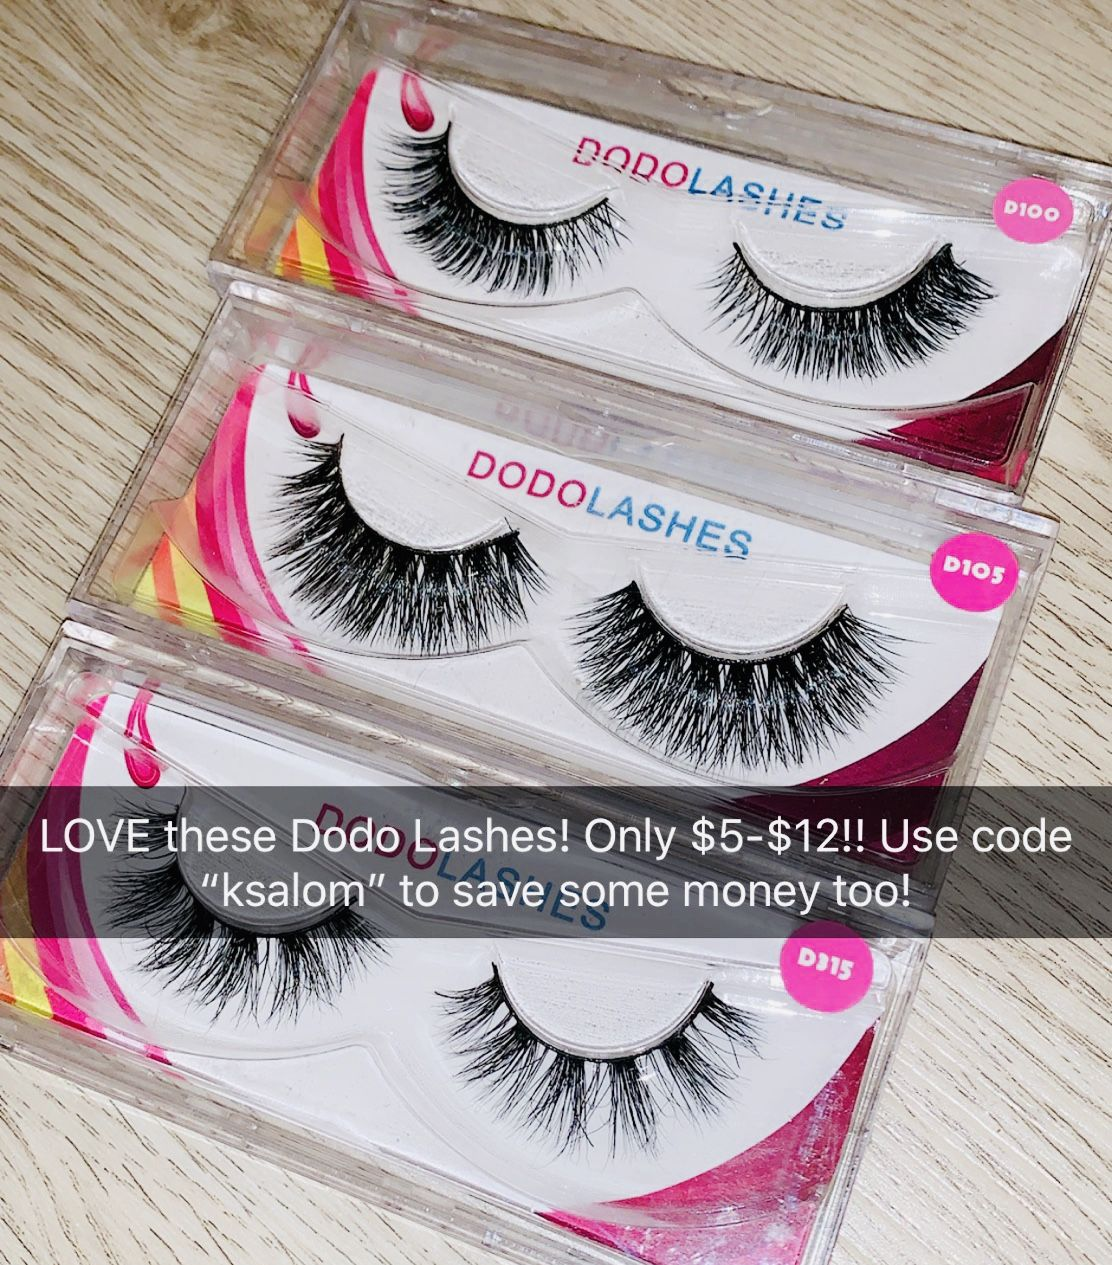 936377979e9 Dodo Lashes are the best! They are only $5-$12 and you can use code